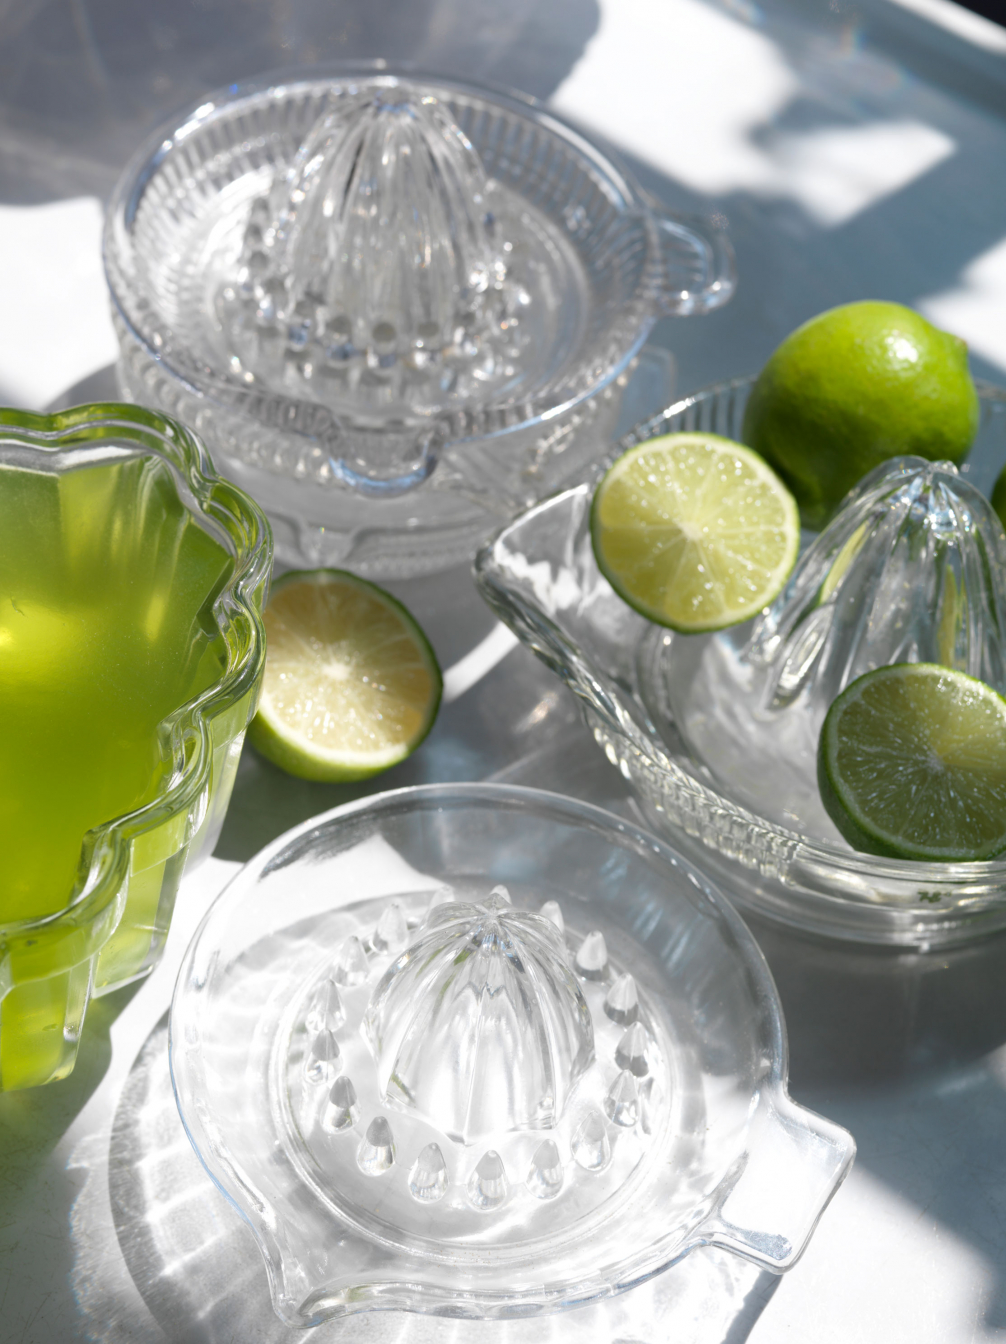 Old Glass Lemon Squeezers